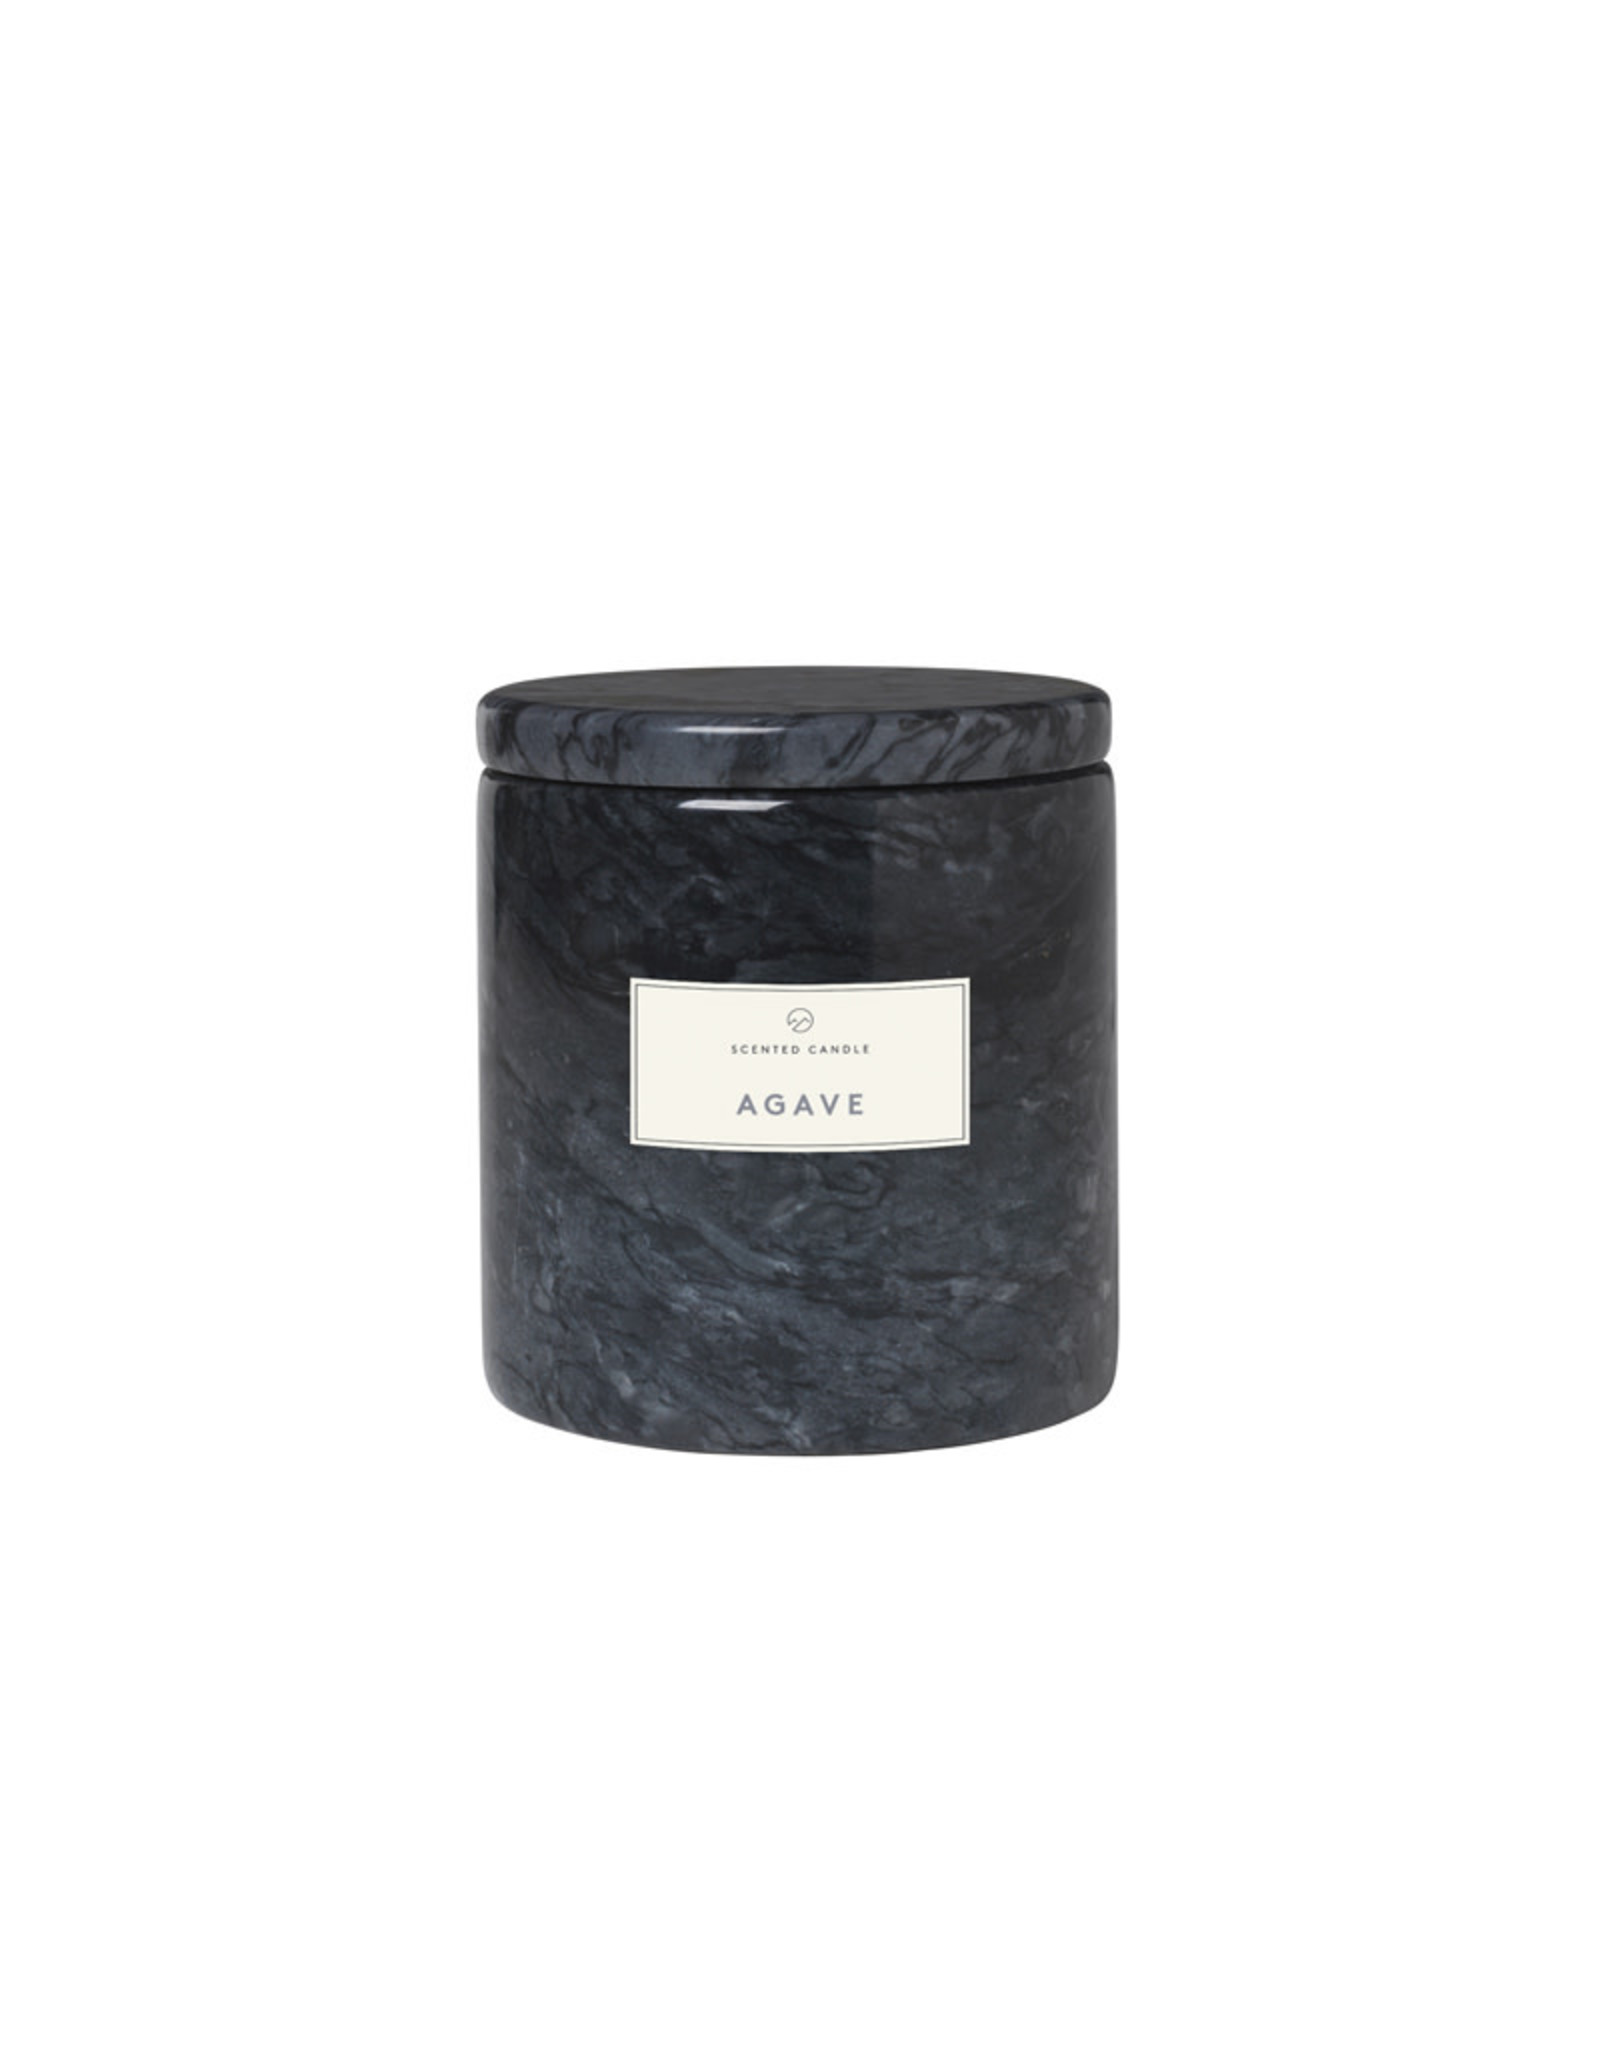 BLOMUS BLOMUS FRABLE SCENTED CANDLE AGAVE